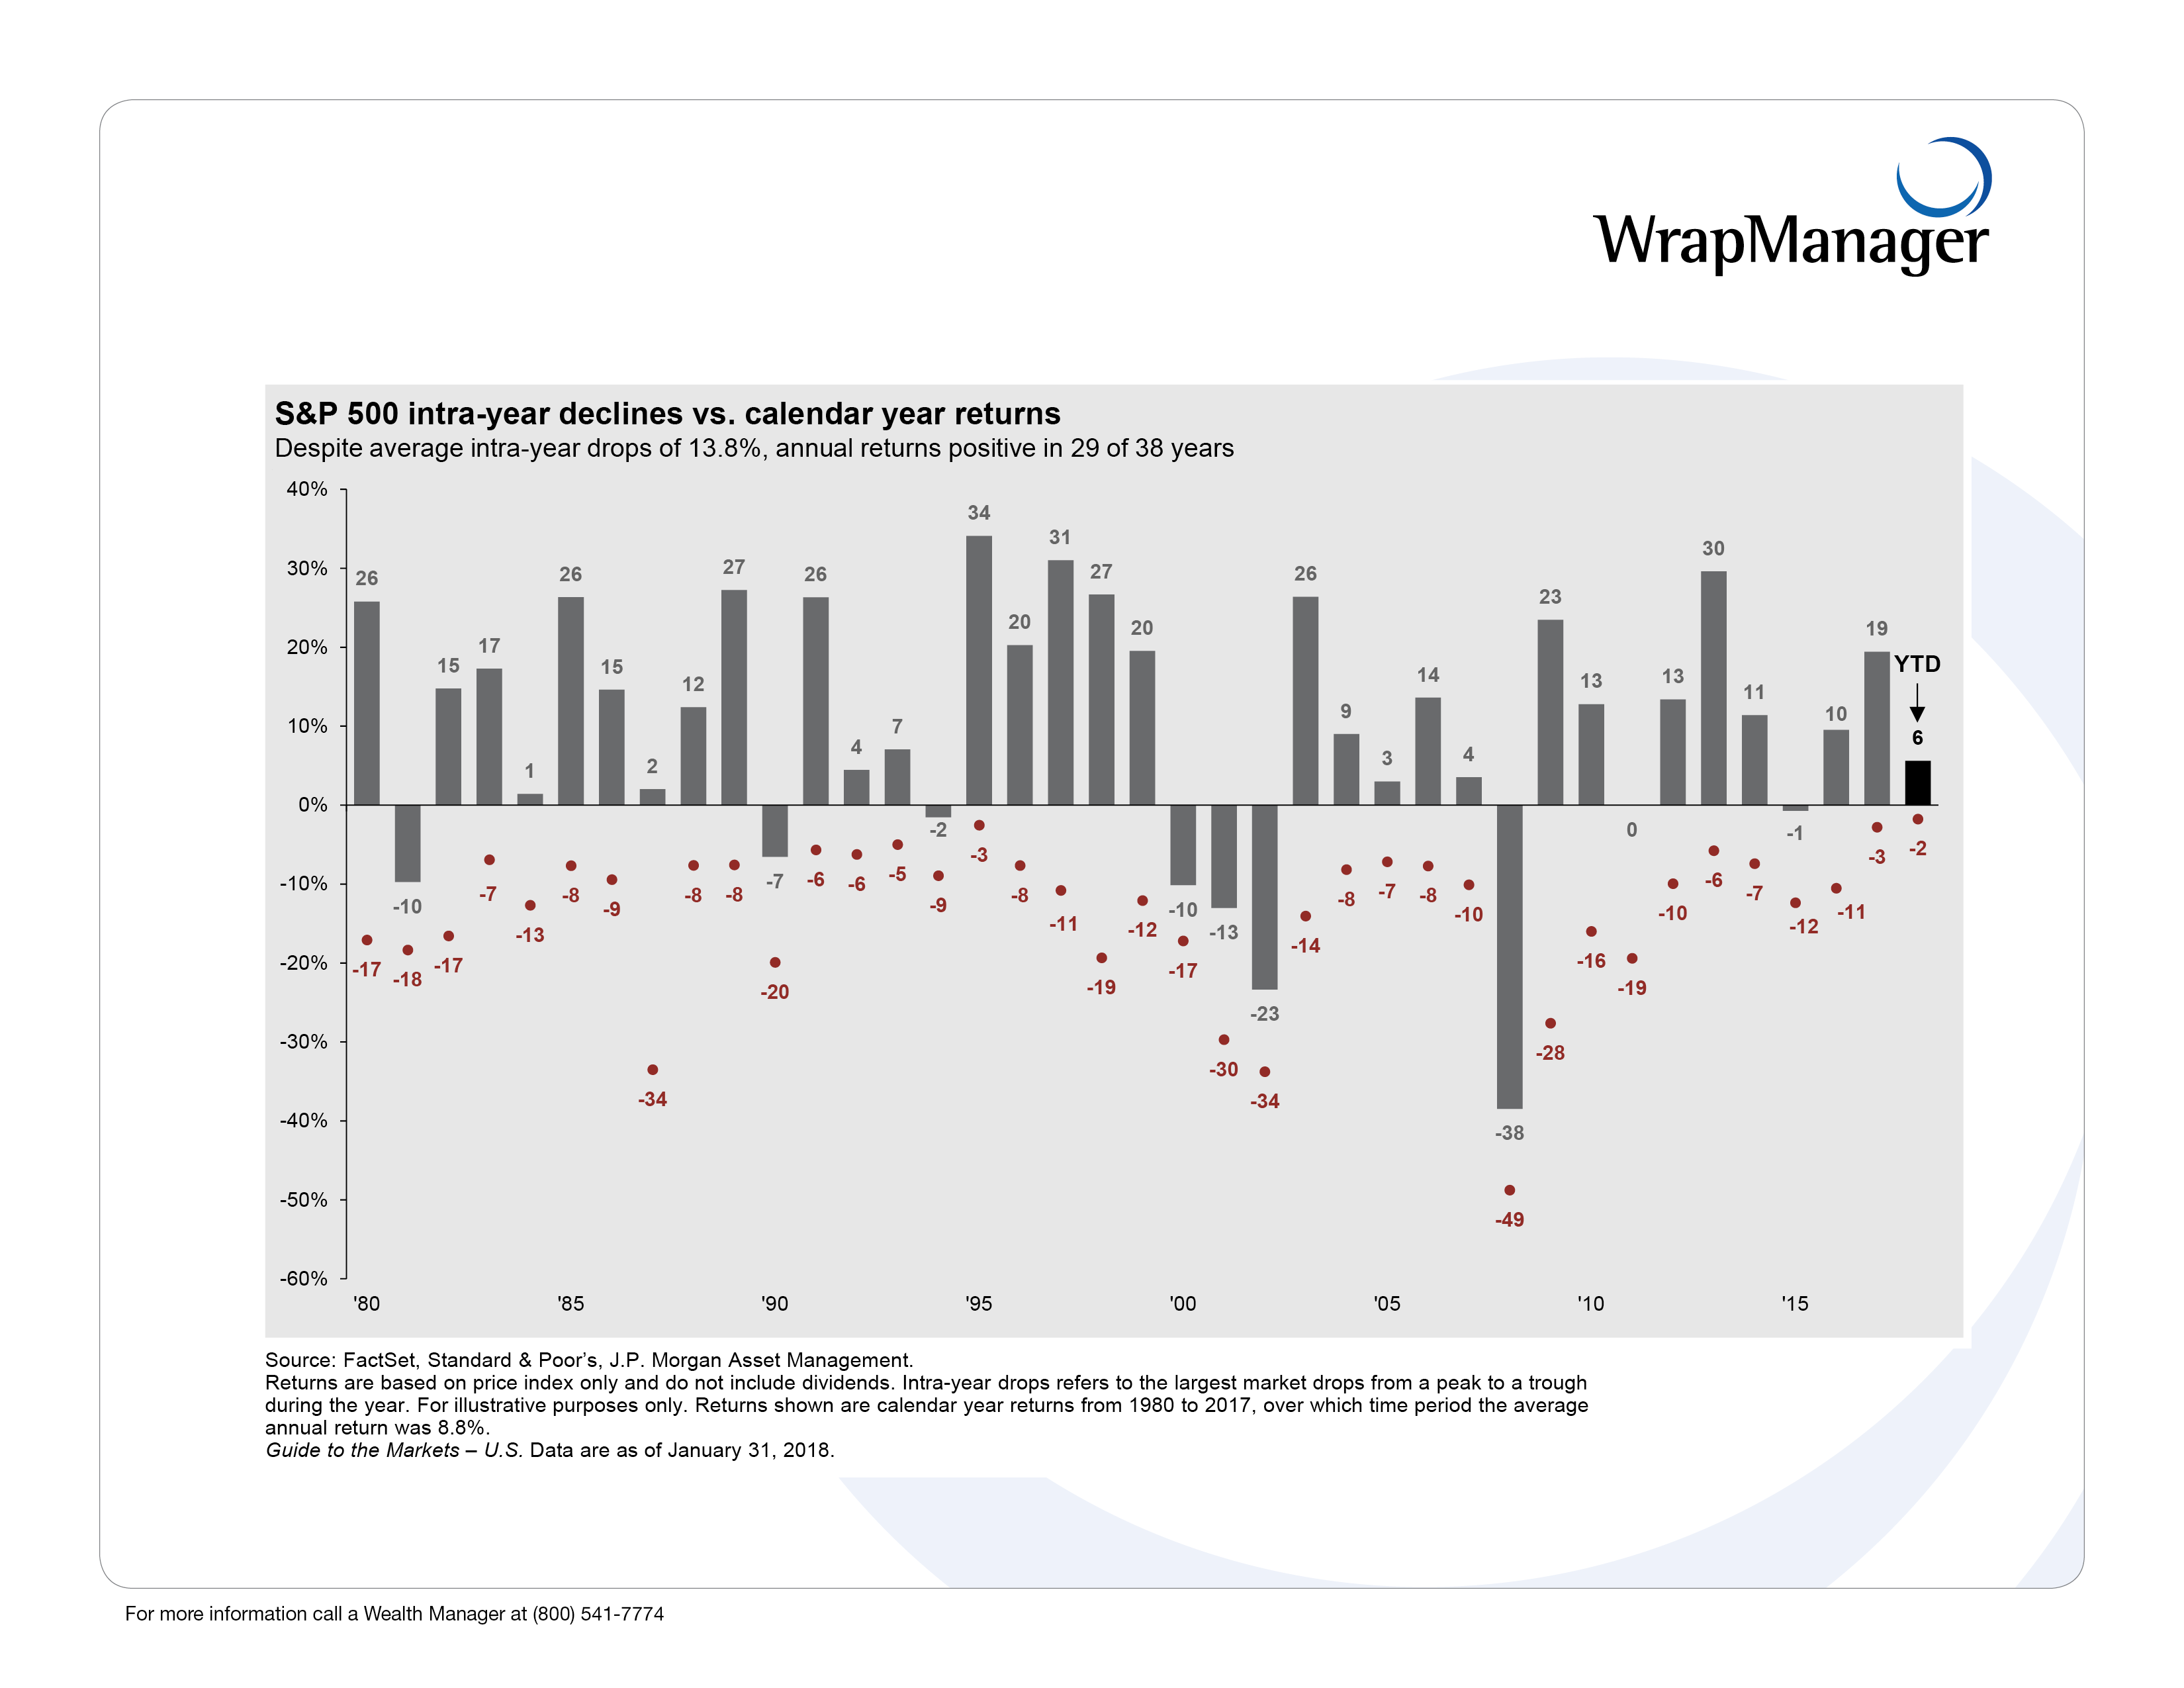 12 WrapManager JPM ANNUAL_RETURNS.png